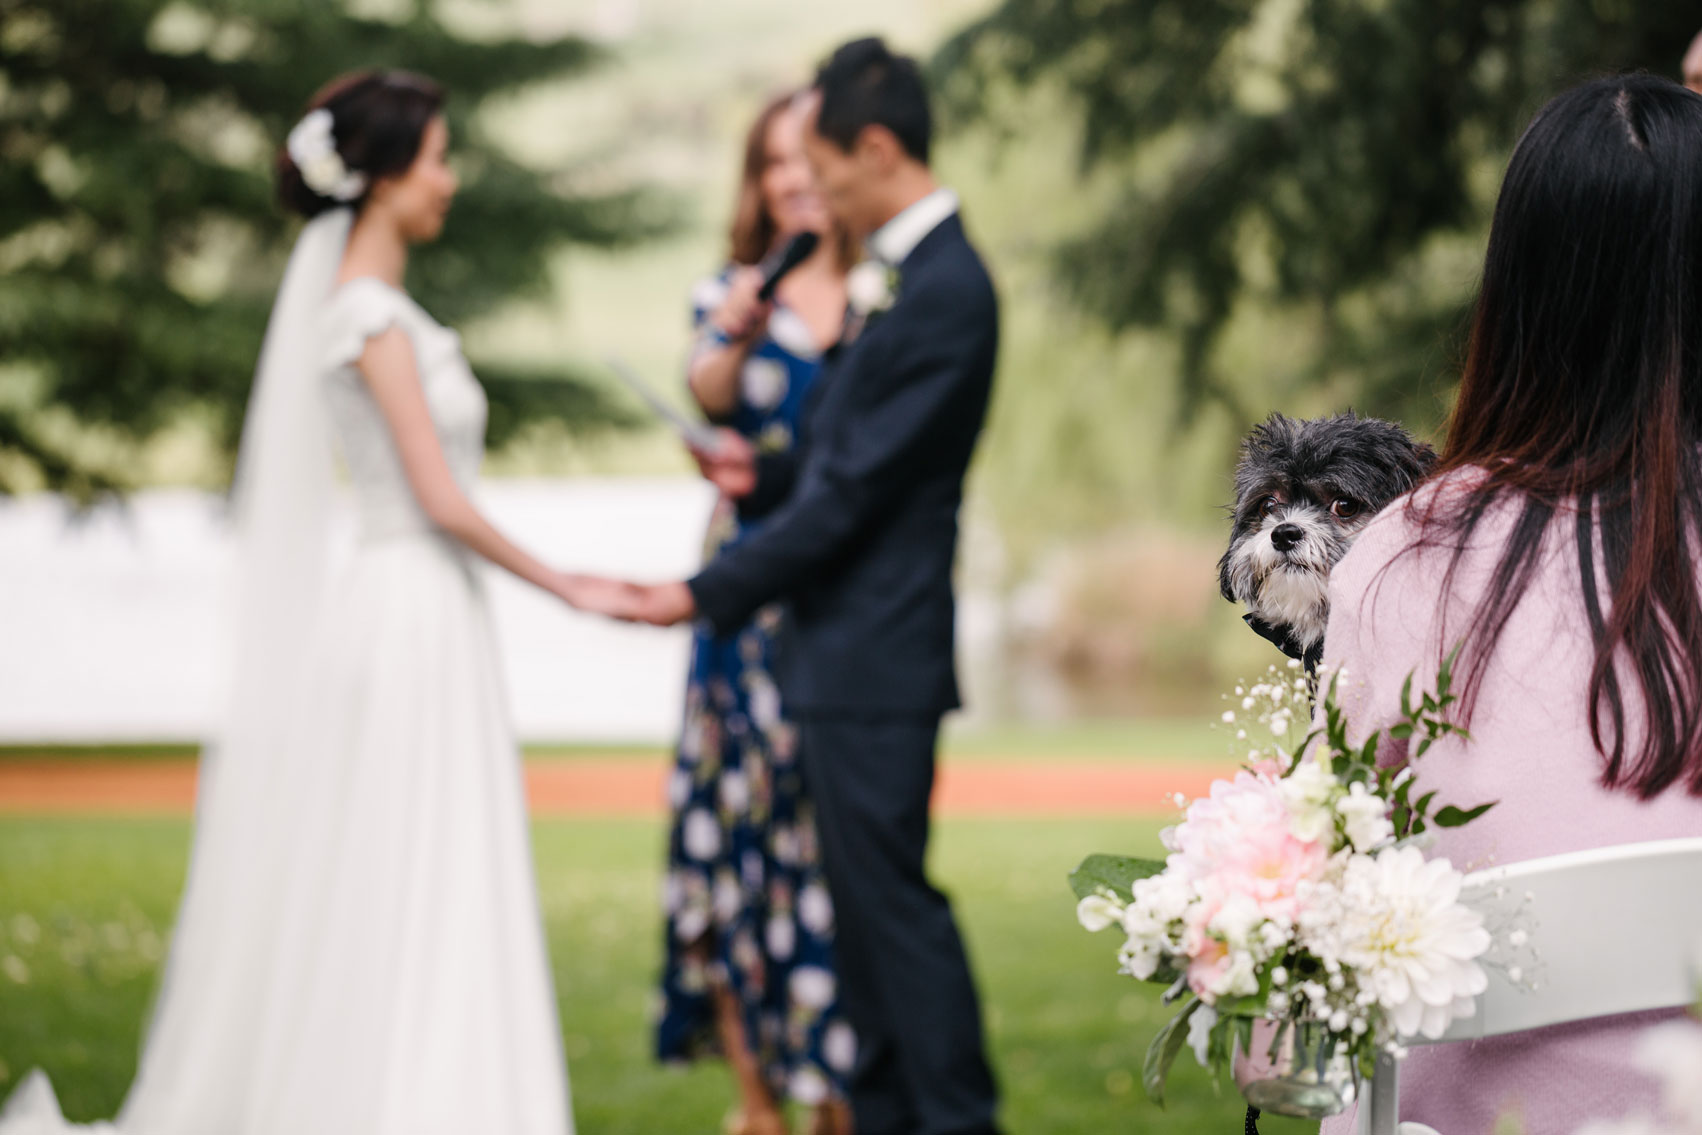 Momo the dog at his masters' wedding ceremony